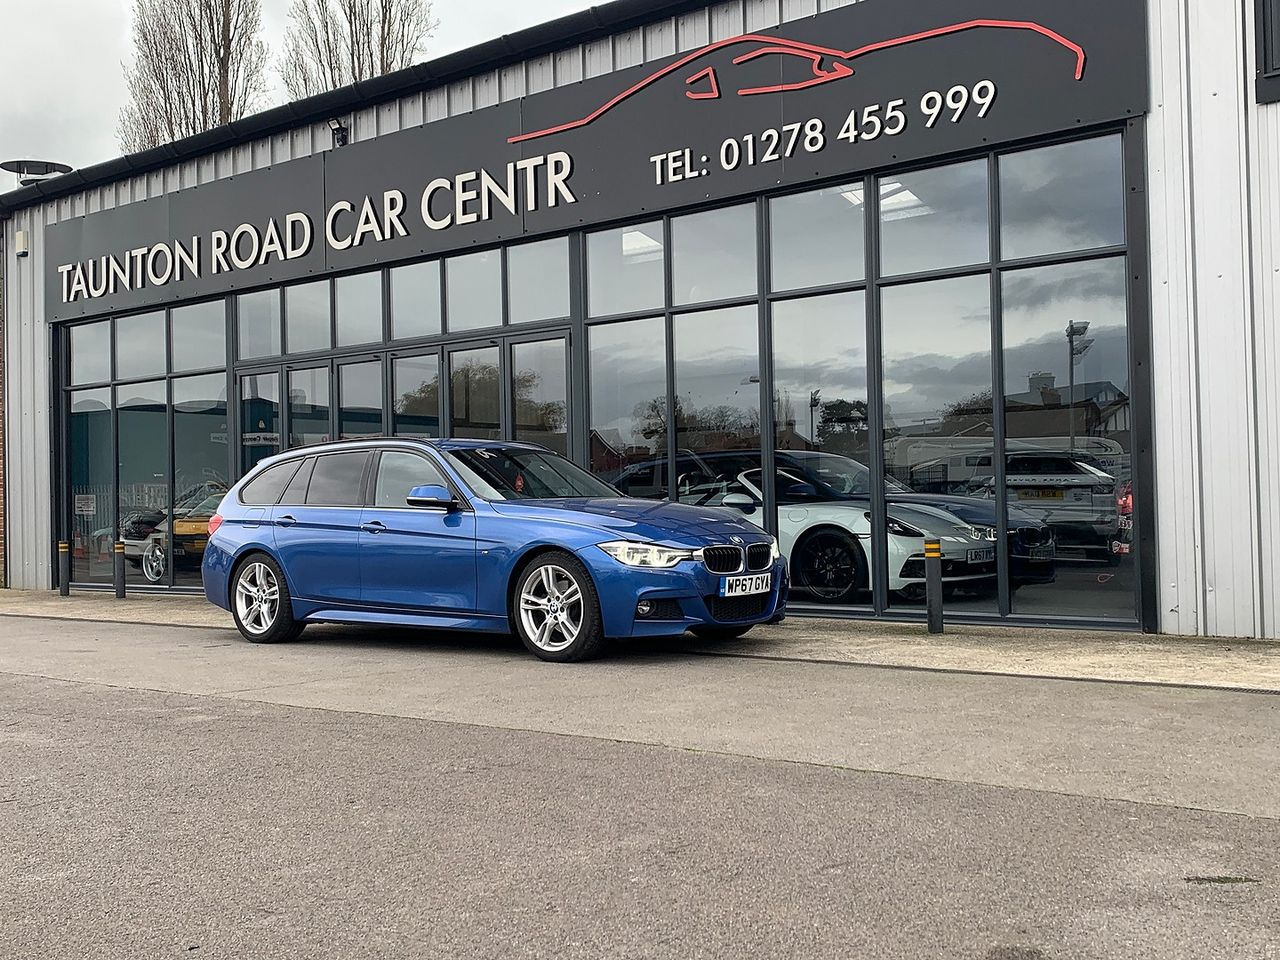 2017 BMW 3 Series  320d M Sport - Picture 1 of 10